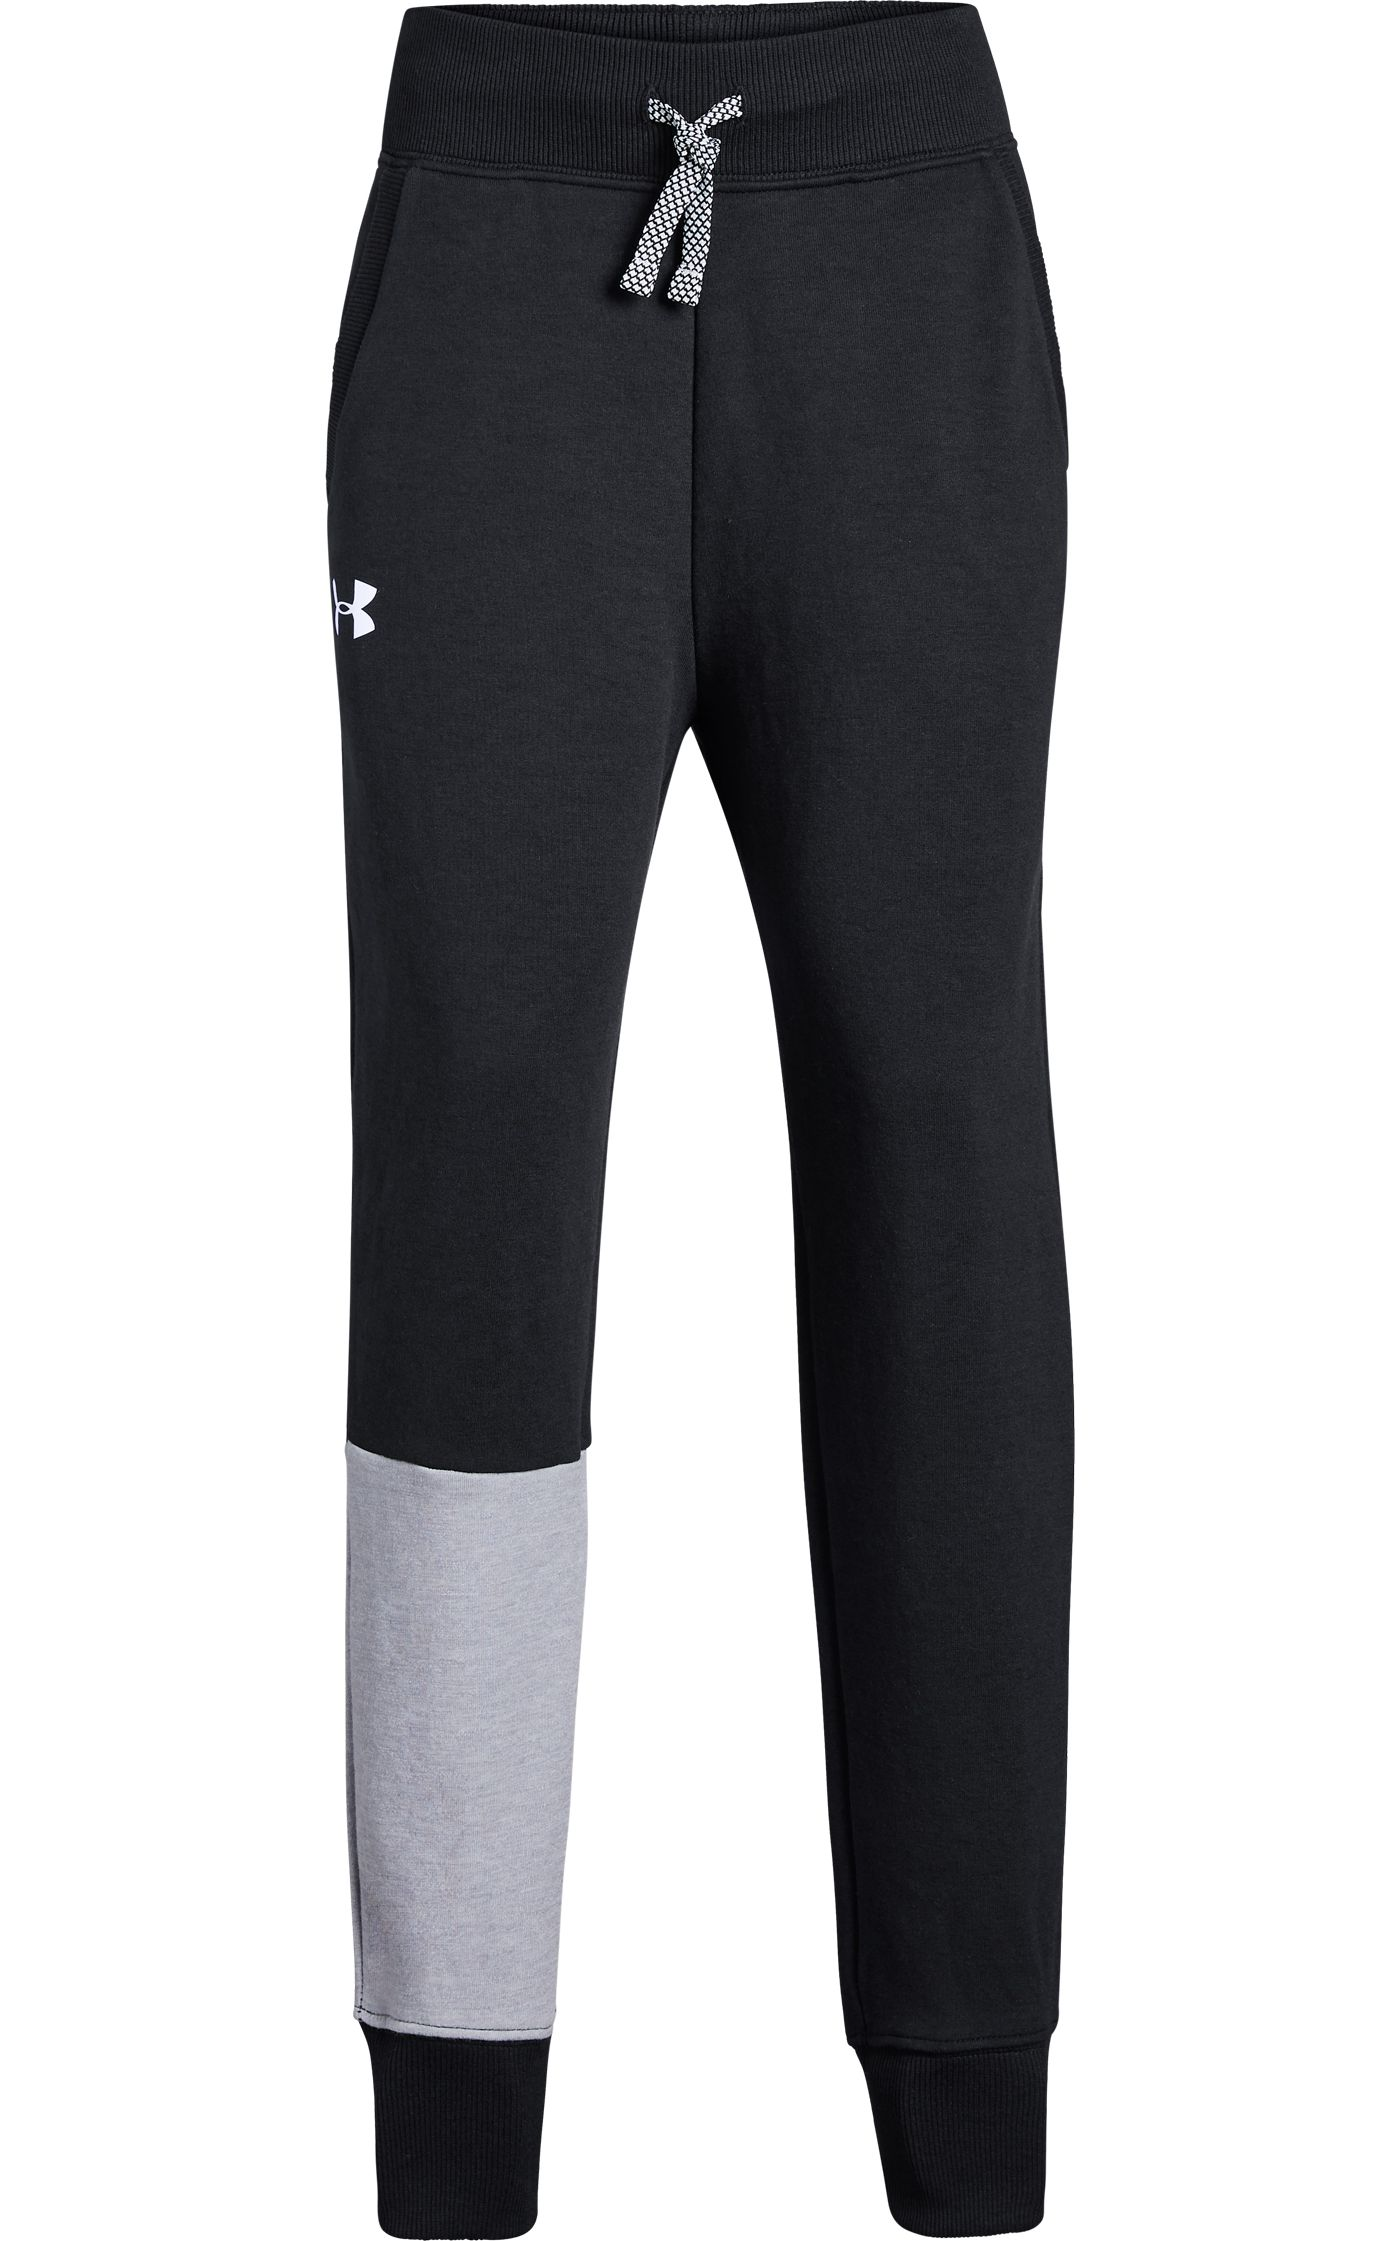 Under Armour Girls' Double Knit Jogger Pants